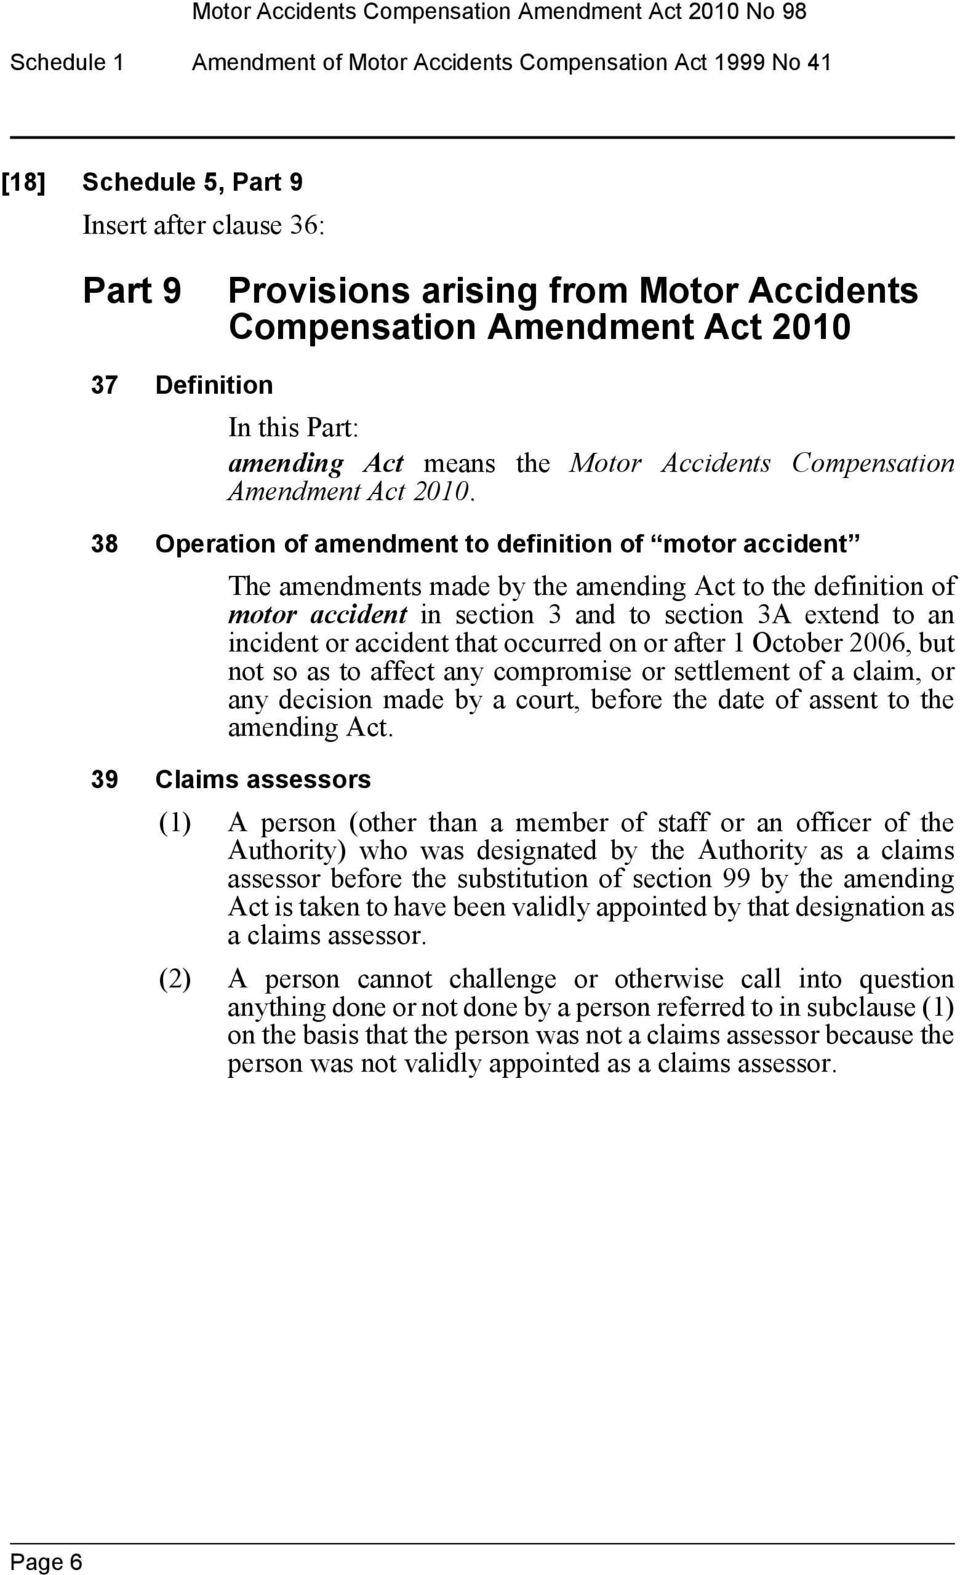 38 Operation of amendment to definition of motor accident The amendments made by the amending Act to the definition of motor accident in section 3 and to section 3A extend to an incident or accident